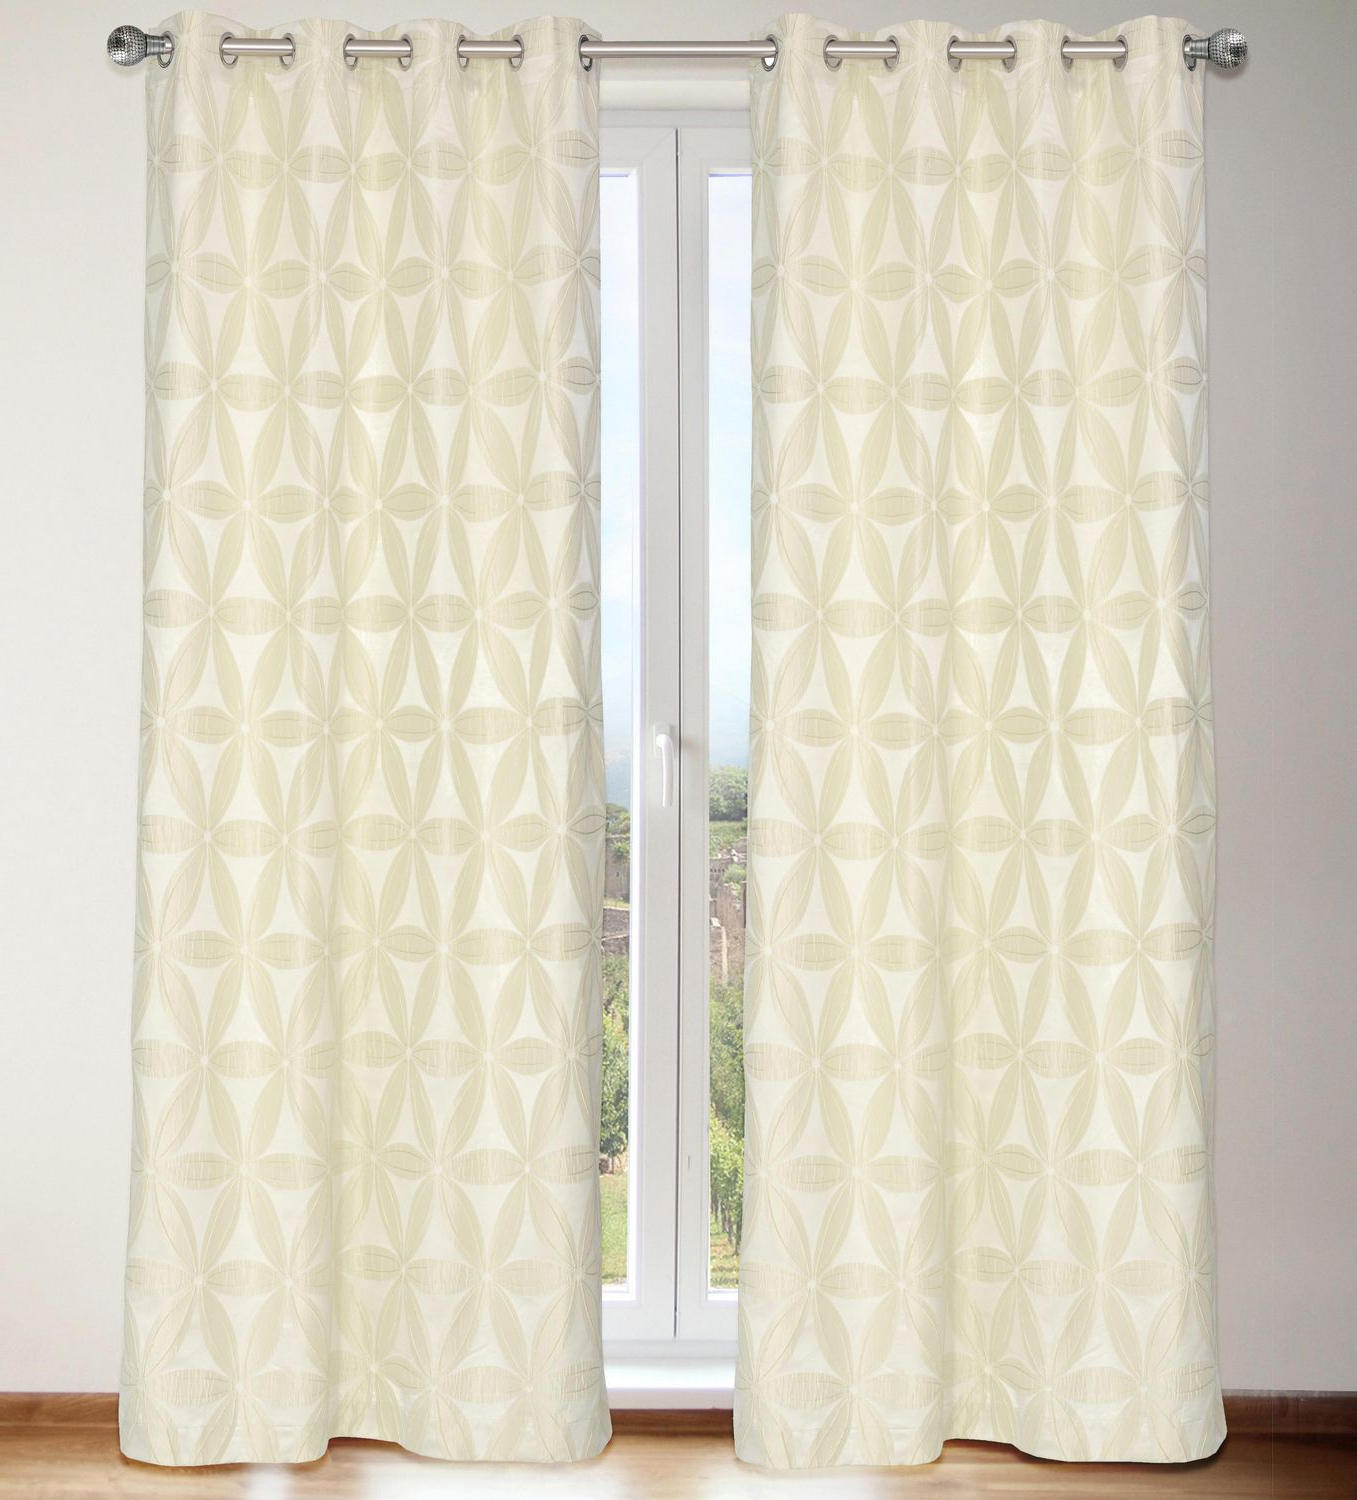 Newest Lj Home Fashions Rita Faux Silk Privacy Lined Floral Grommet With Regard To Ofloral Embroidered Faux Silk Window Curtain Panels (View 11 of 20)